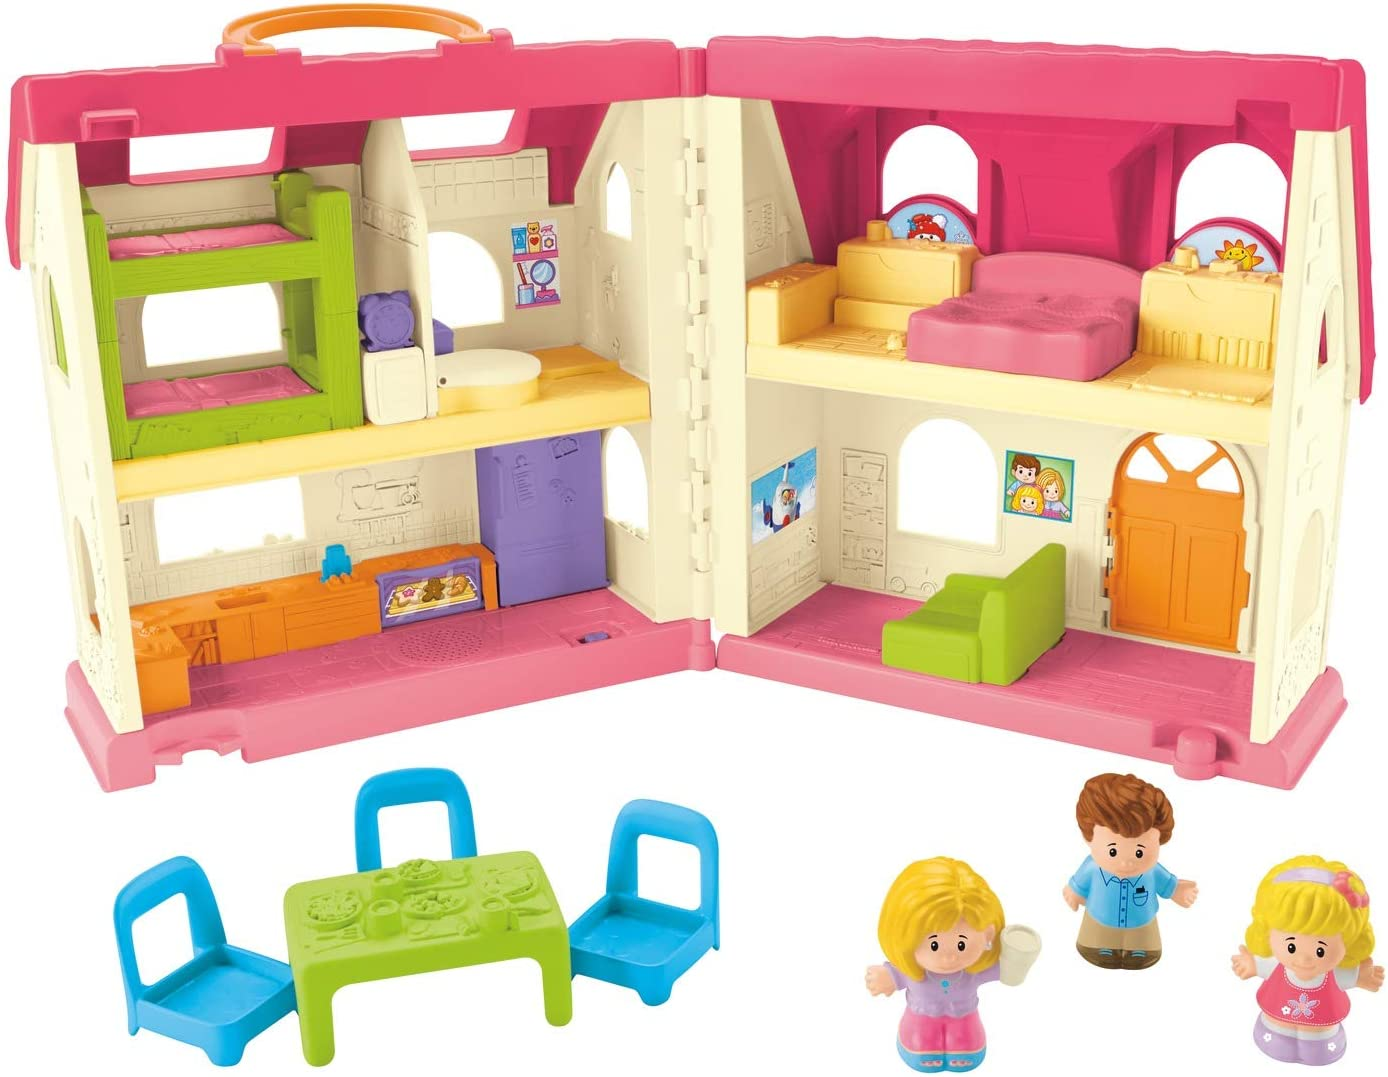 9 Best Fisher Price Little People Reviews in 2021 15